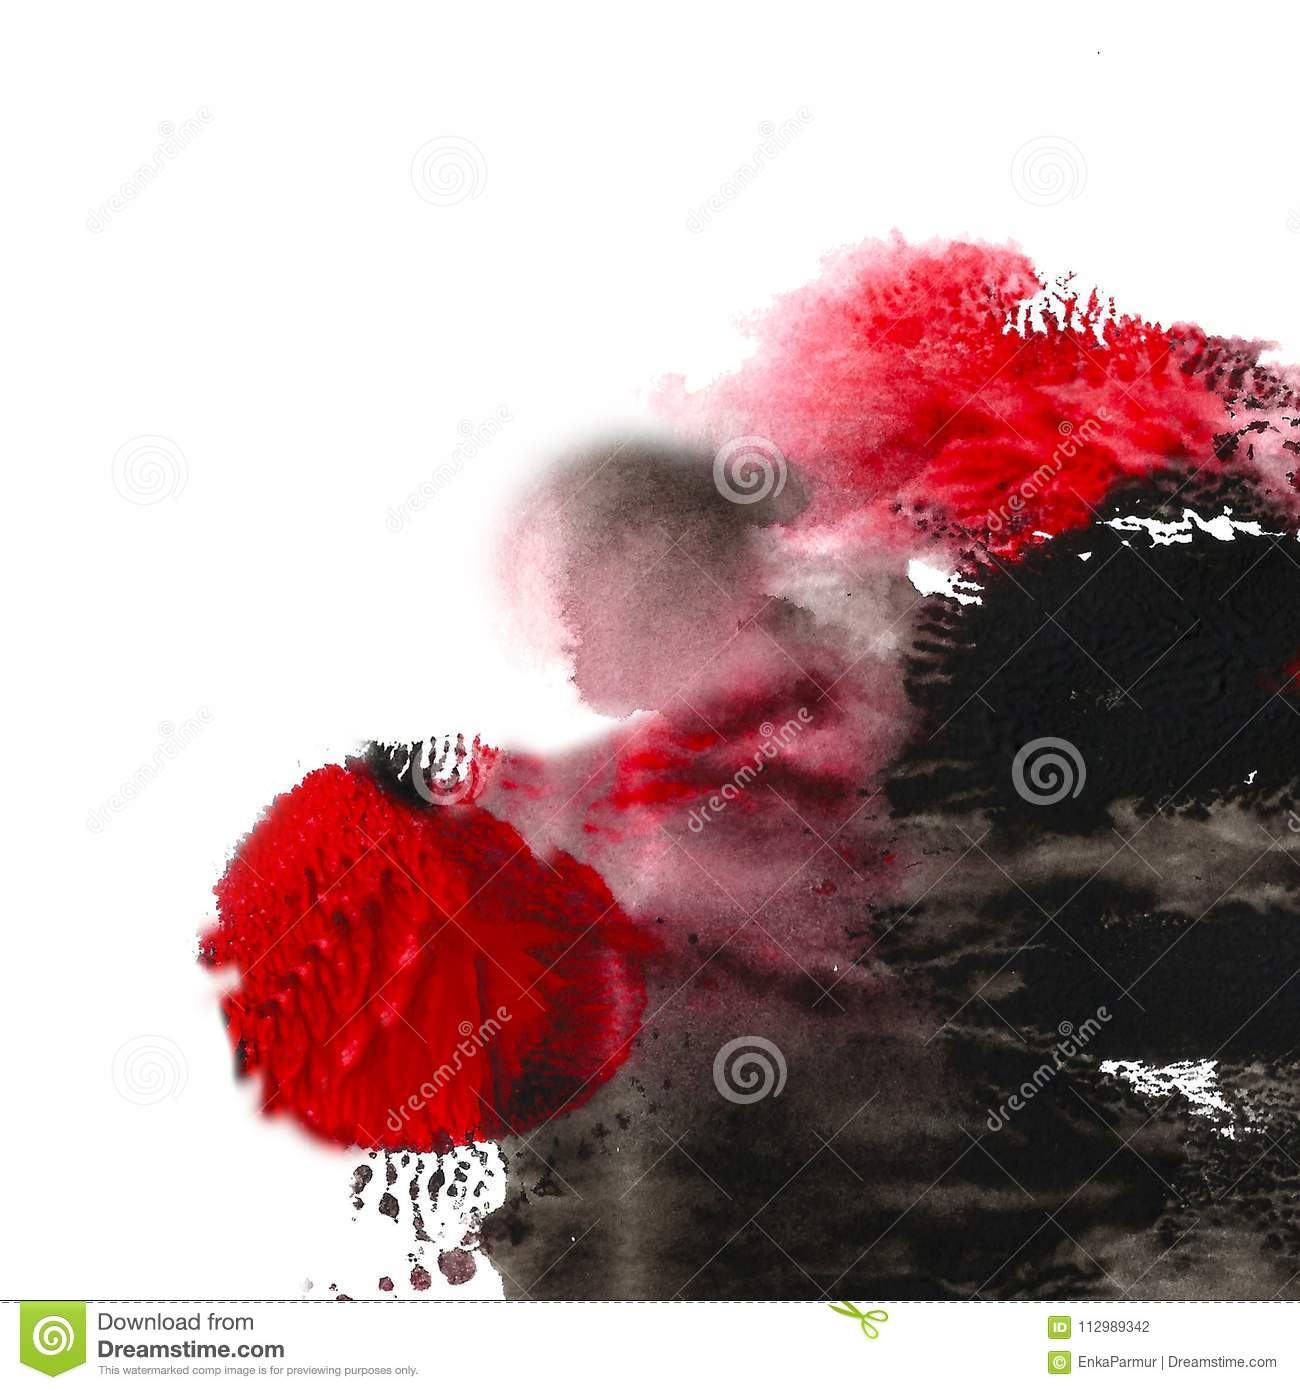 Abstract acrylic painted background. Black, red textured vibrant color. Grunge template for your design.